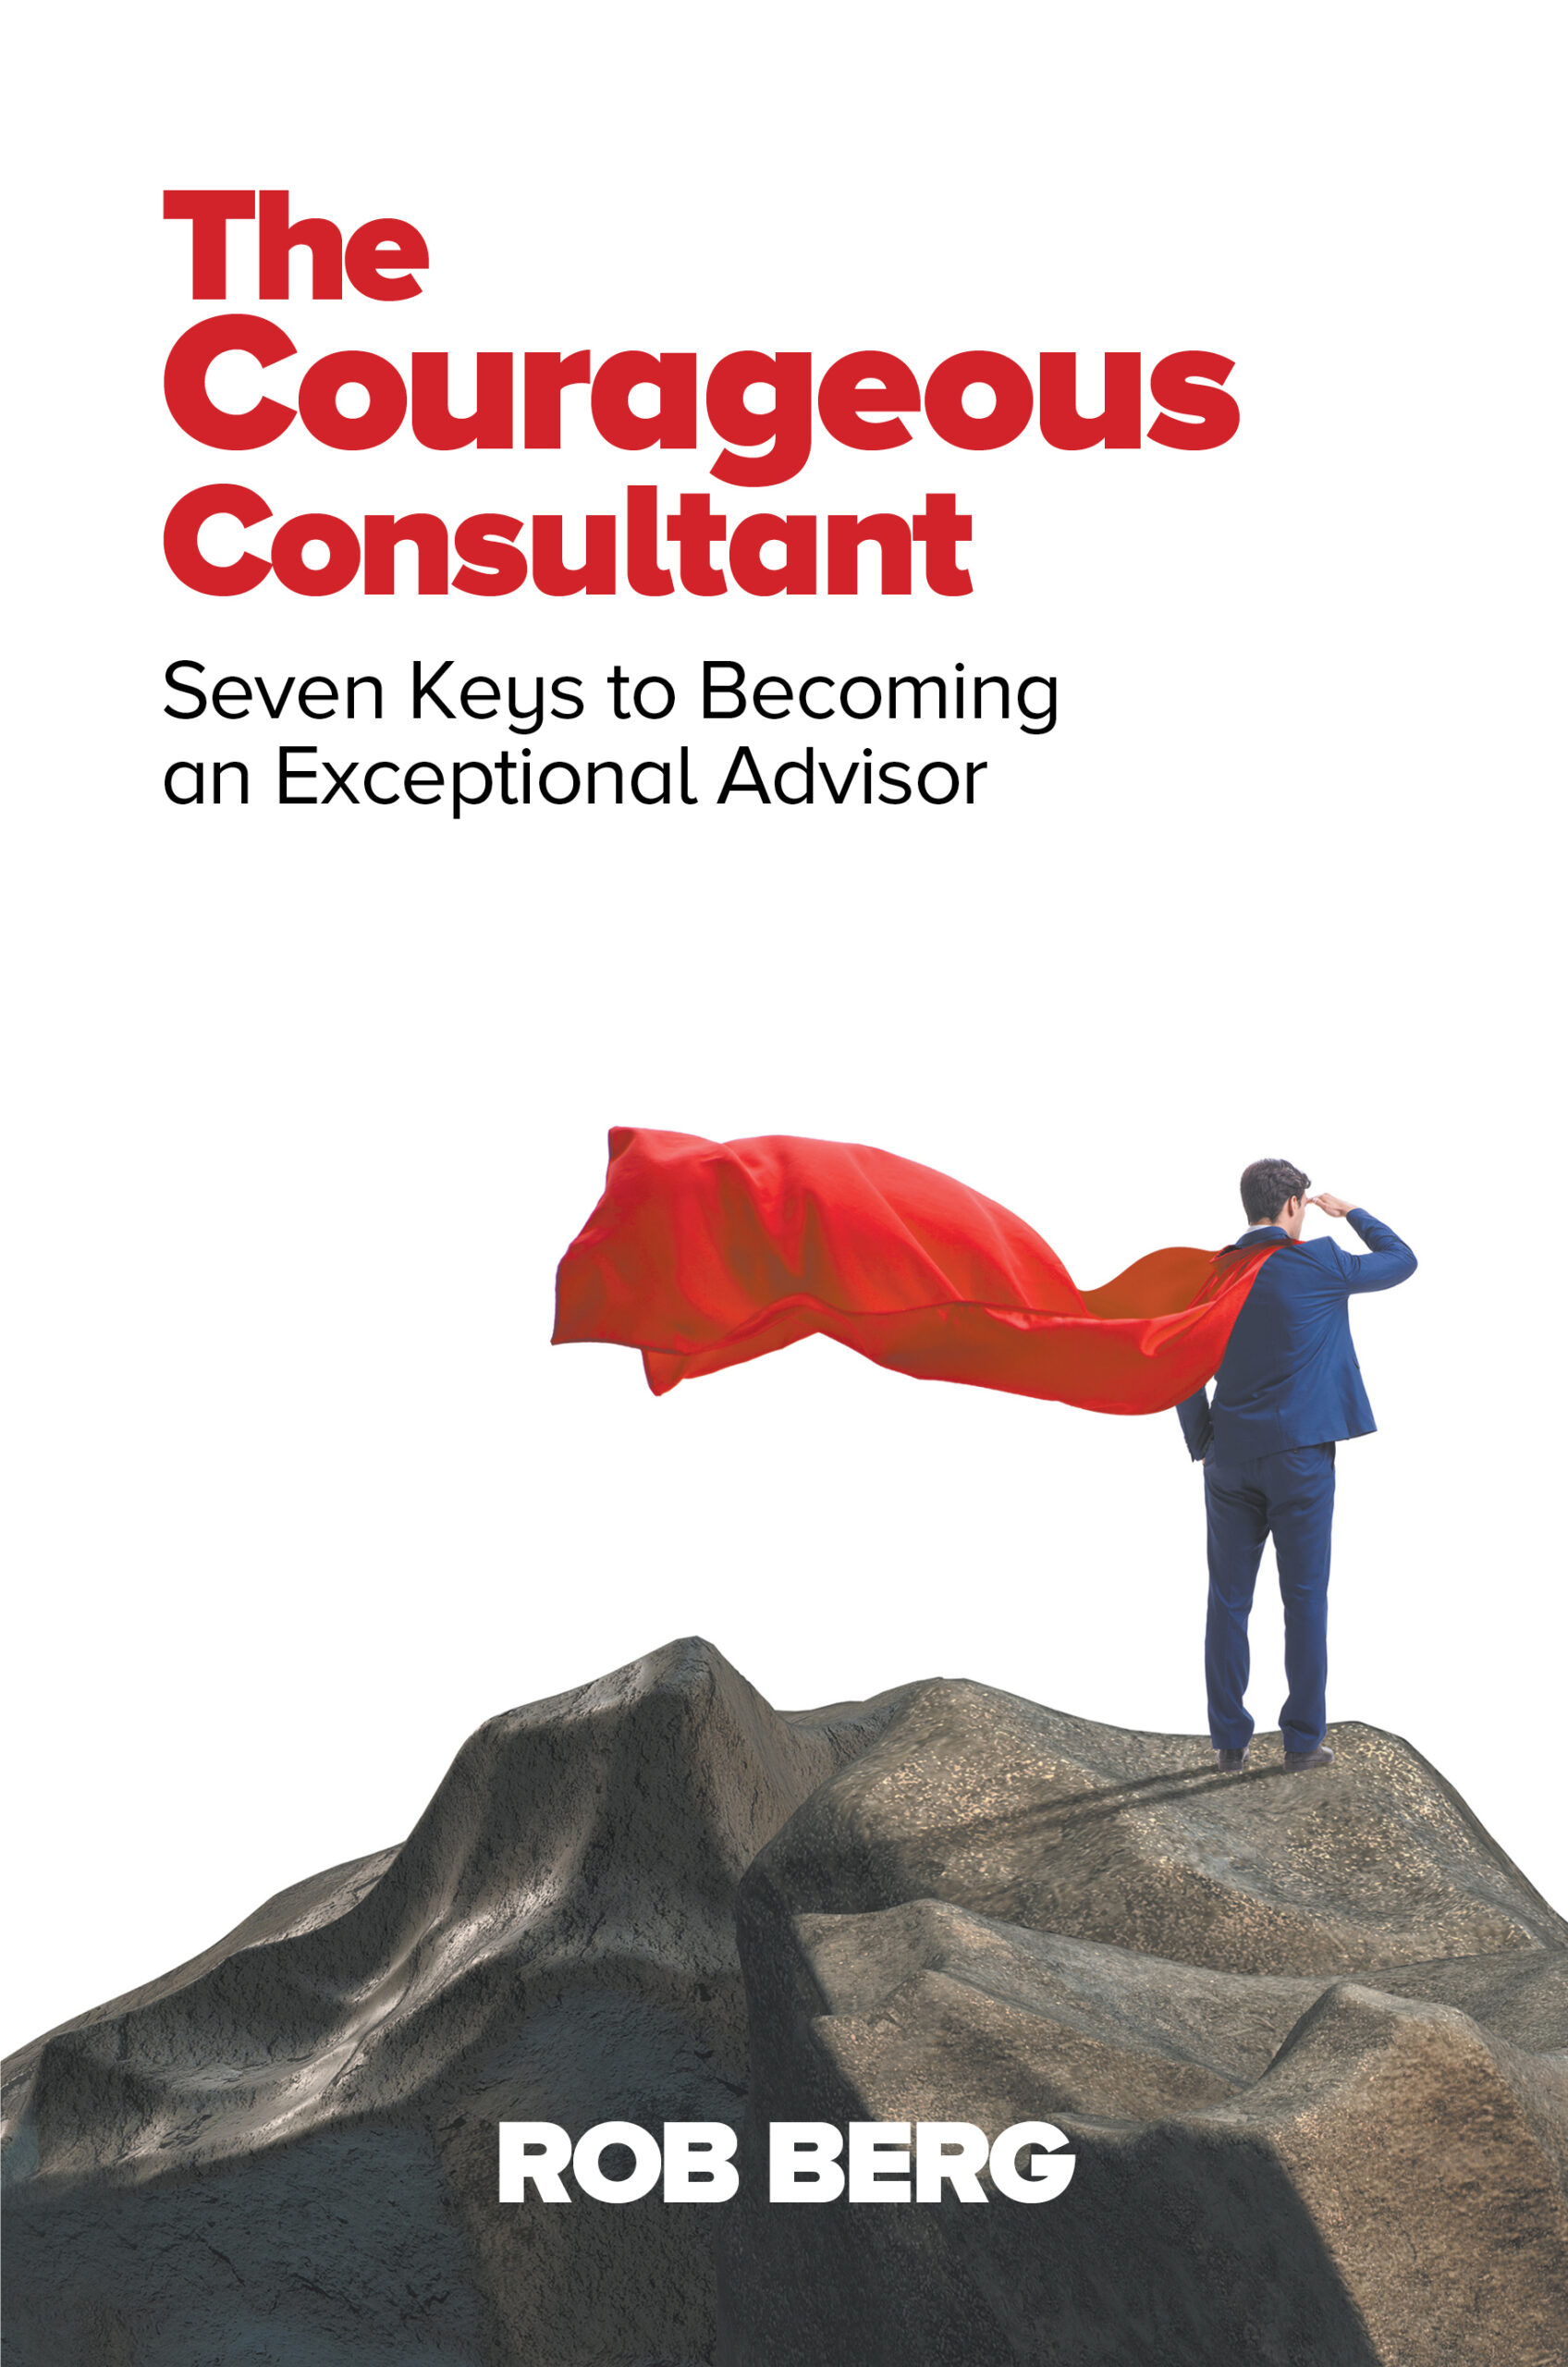 The Courageous Consultant